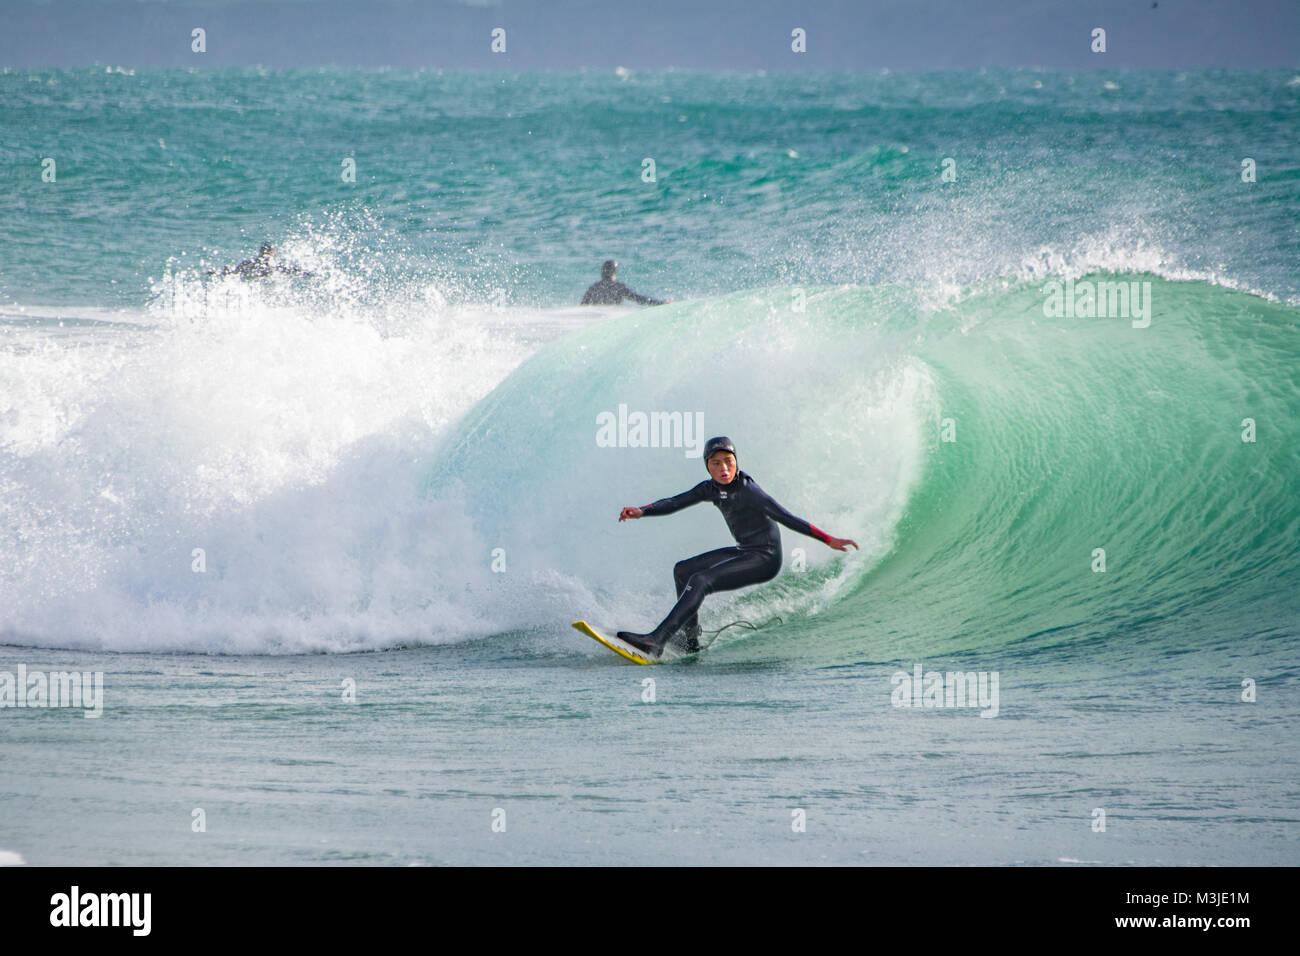 Praa Sands, Cornwall, UK. 11th Feb 2018. UK Weather. Dozens of surfers were out on the waves at Praa sands this - Stock Image